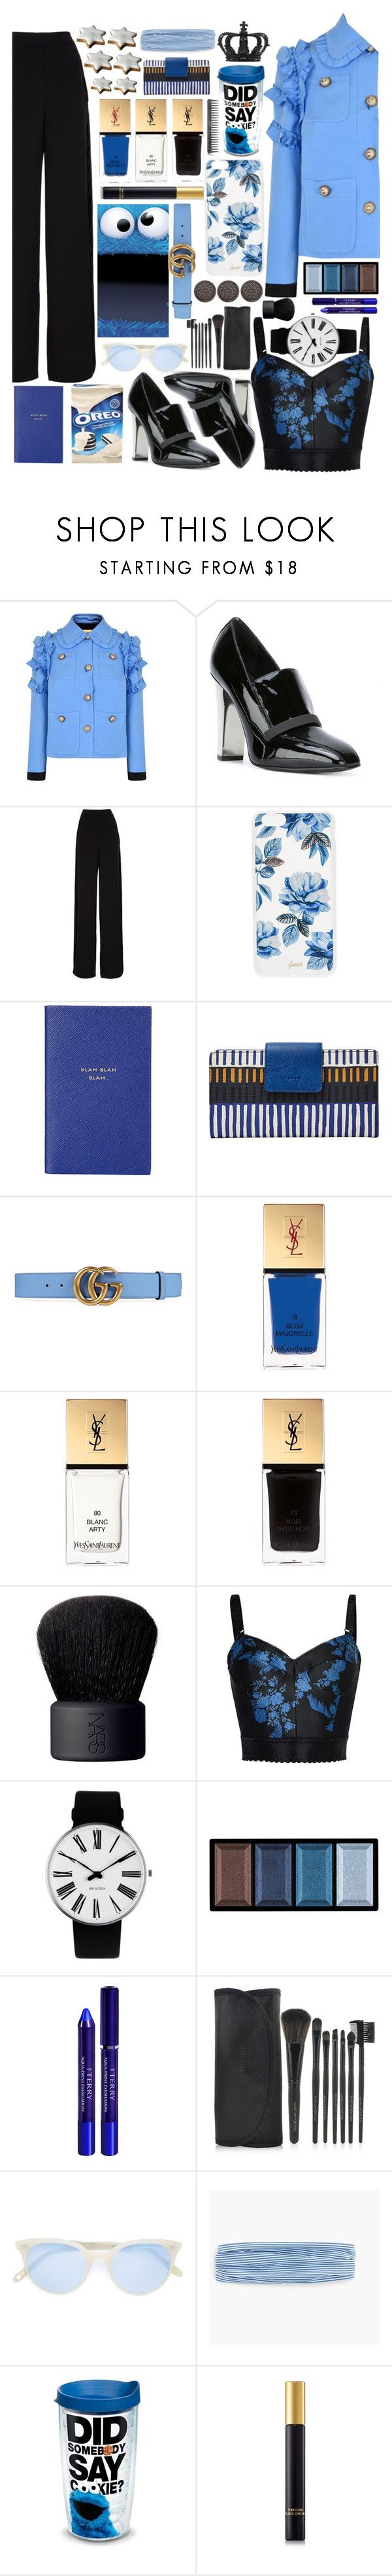 """""""Cookie Monsters Love Fashion too."""" by kleasterling on Polyvore featuring Gucci, Giuseppe Zanotti, Rochas, Sonix, Smythson, FOSSIL, Yves Saint Laurent, NARS Cosmetics, STELLA McCARTNEY and Rosendahl"""